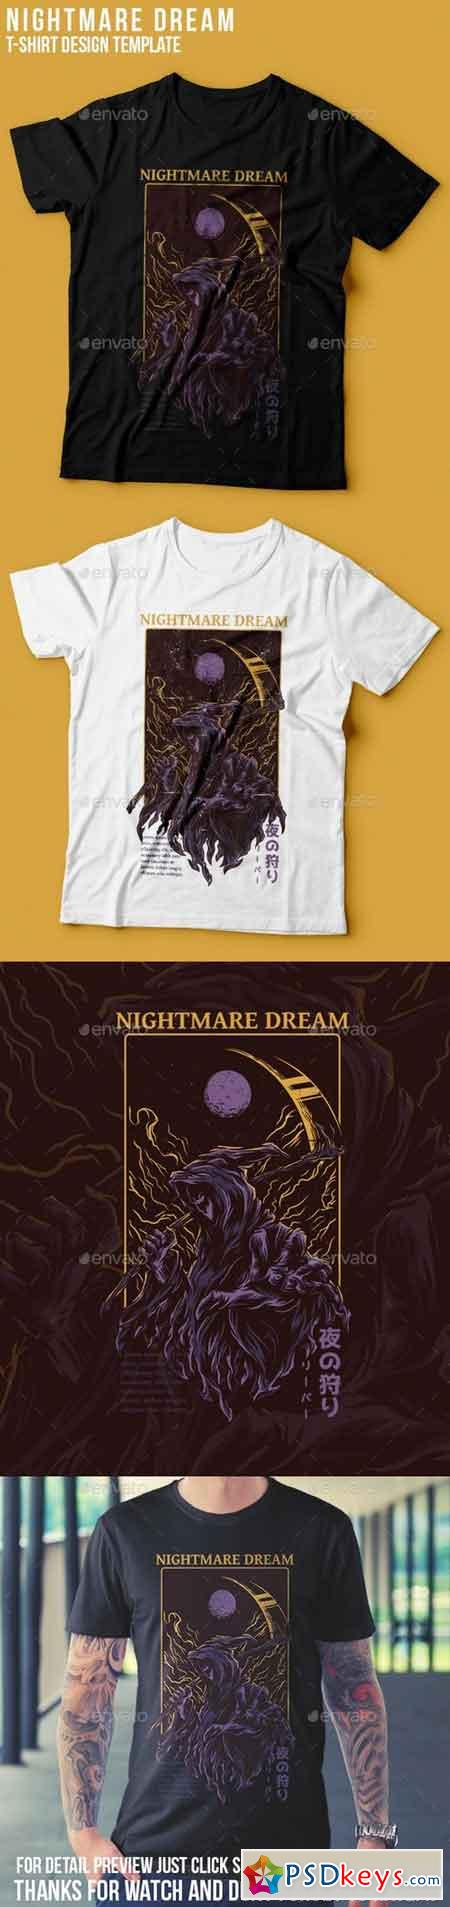 Nightmare Dream T-Shirt Design 22765707